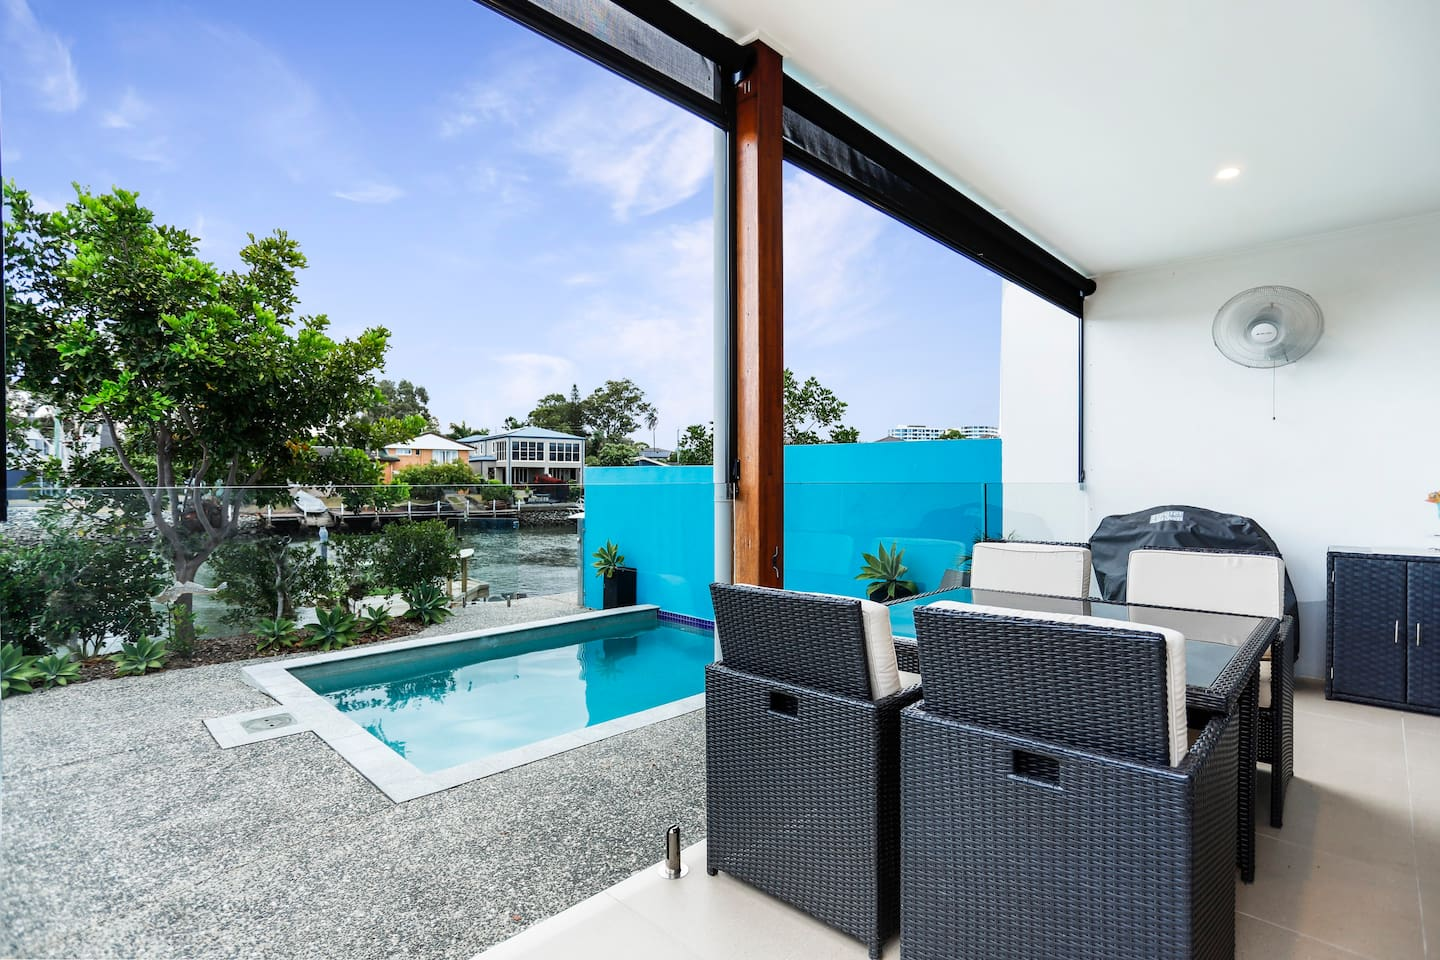 Outdoor Entertaining area, pool and jetty